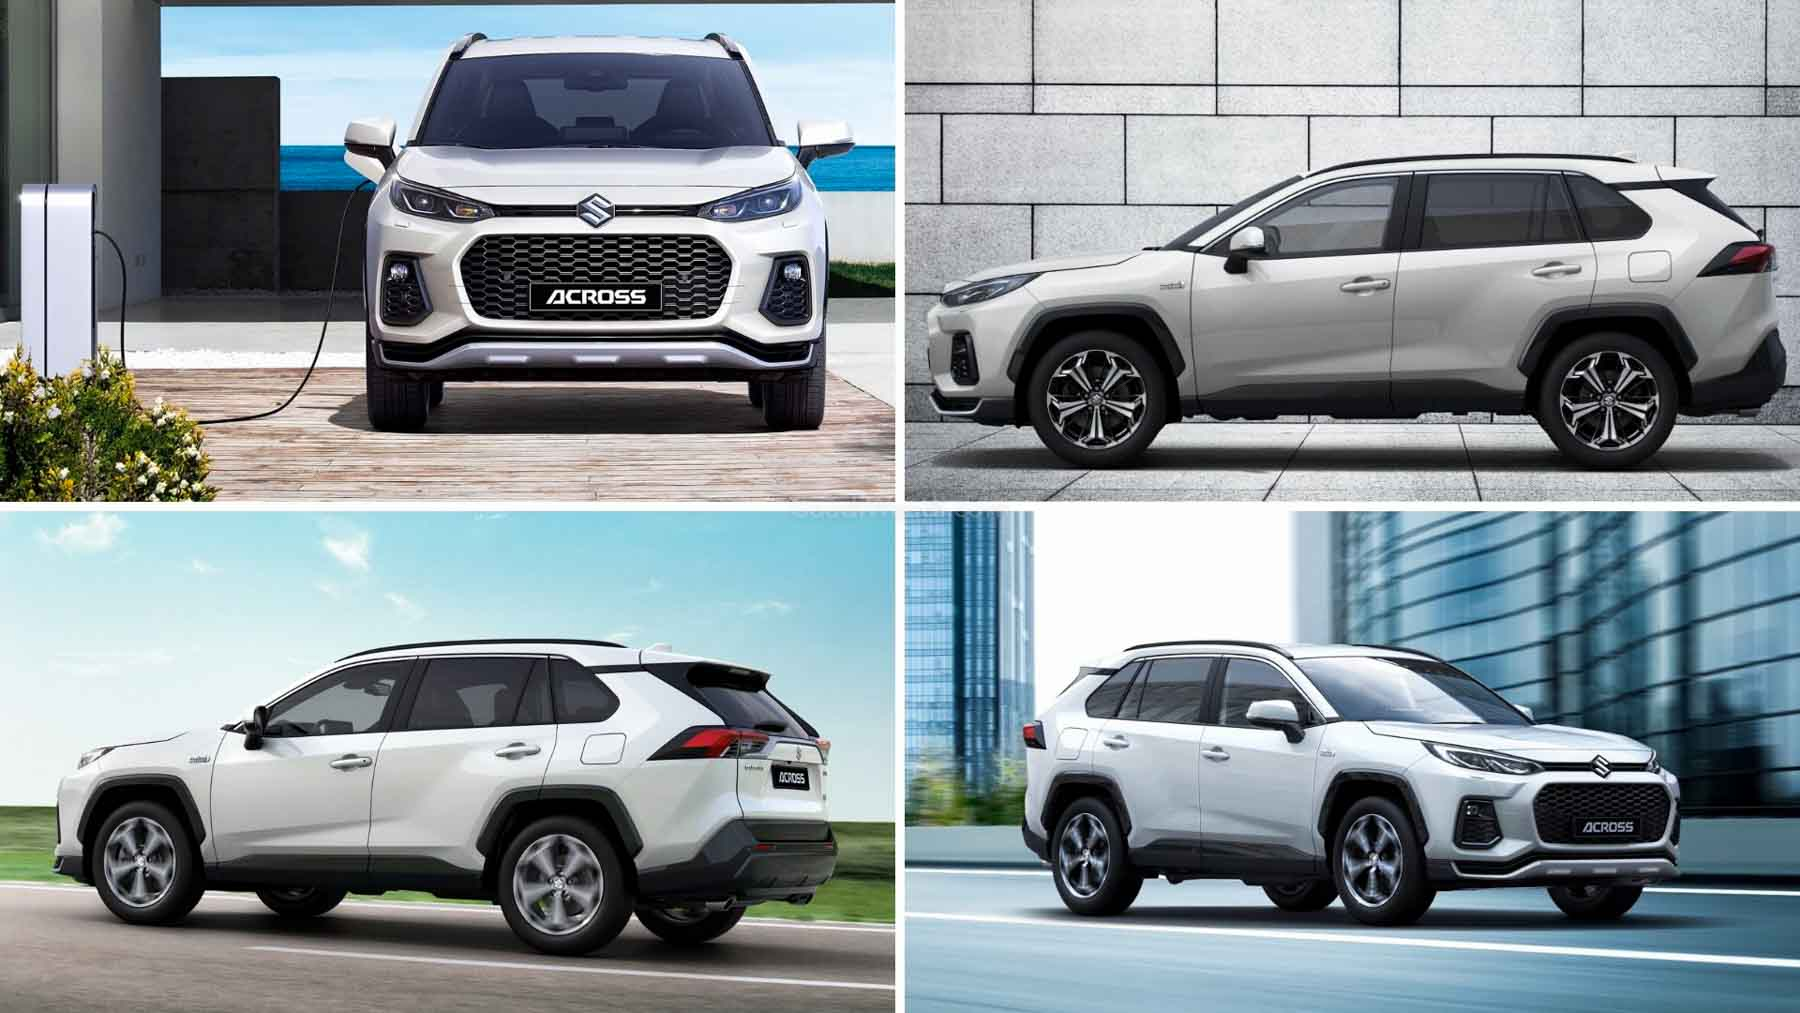 5 Things To Know About The New Suzuki ACross SUV